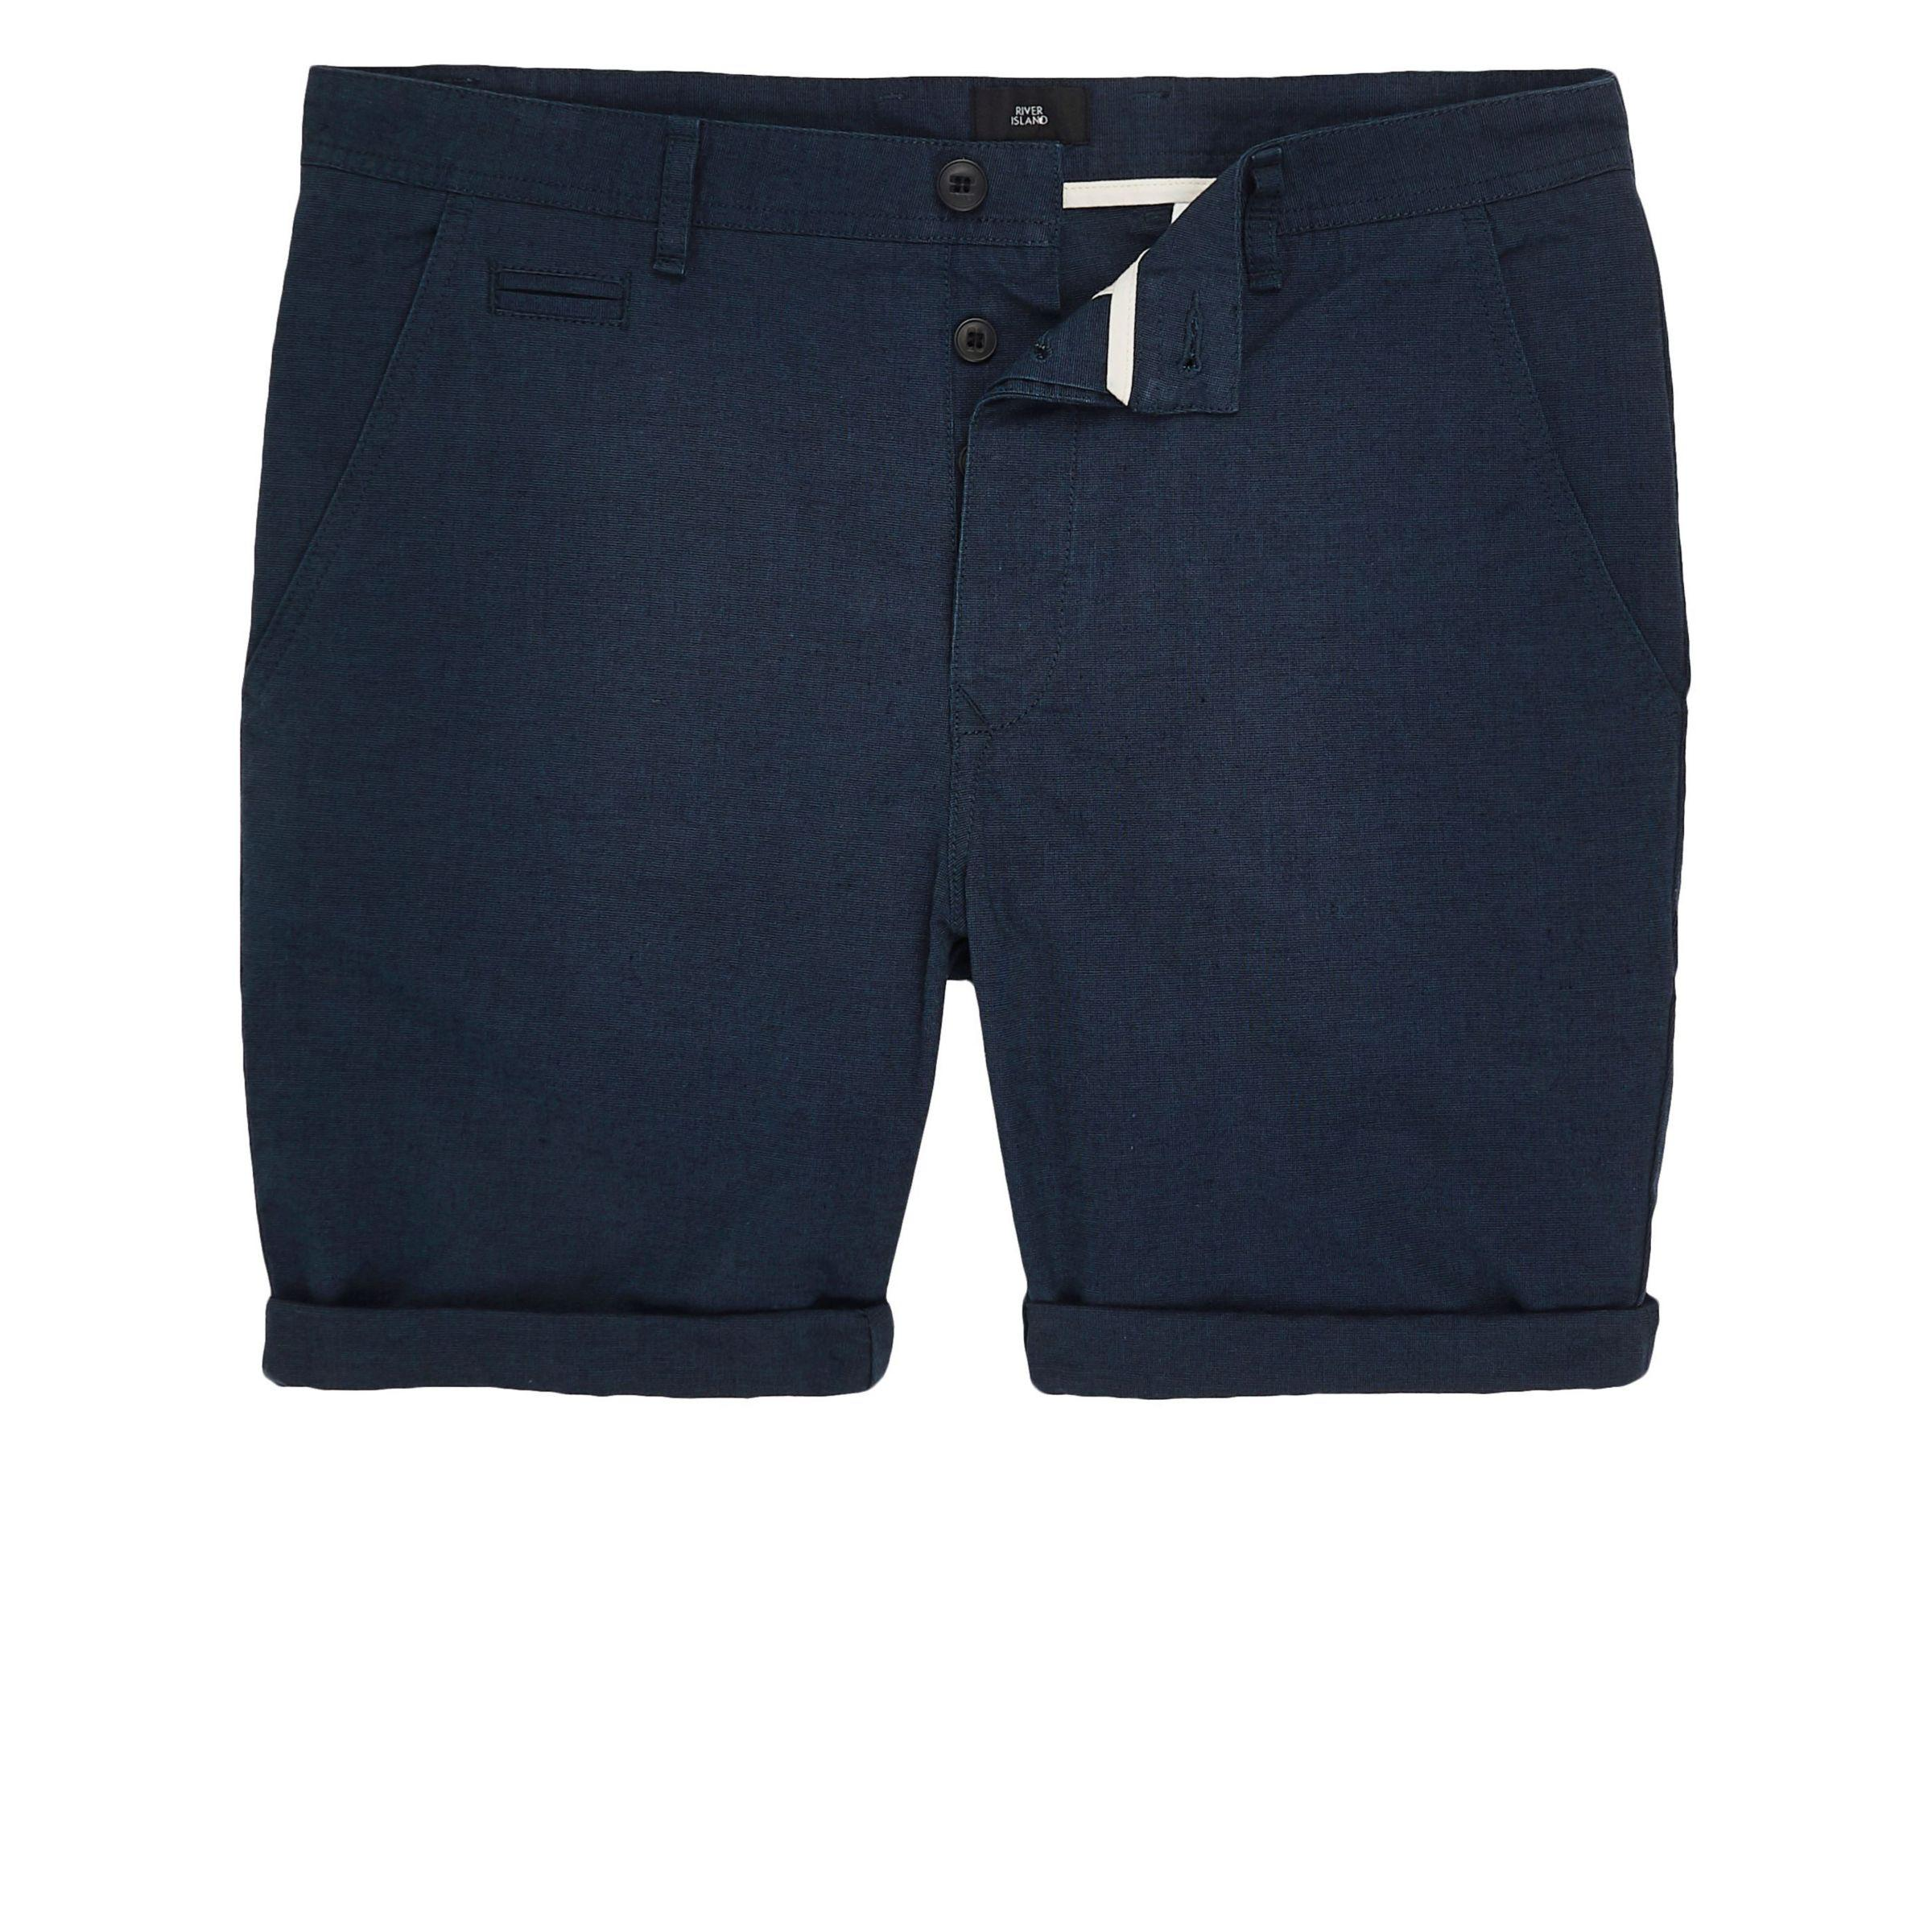 Excellent Popular For Sale Mens Blue slim fit Oxford chino shorts River Island Choice Online For Sale Online Store p16uxb